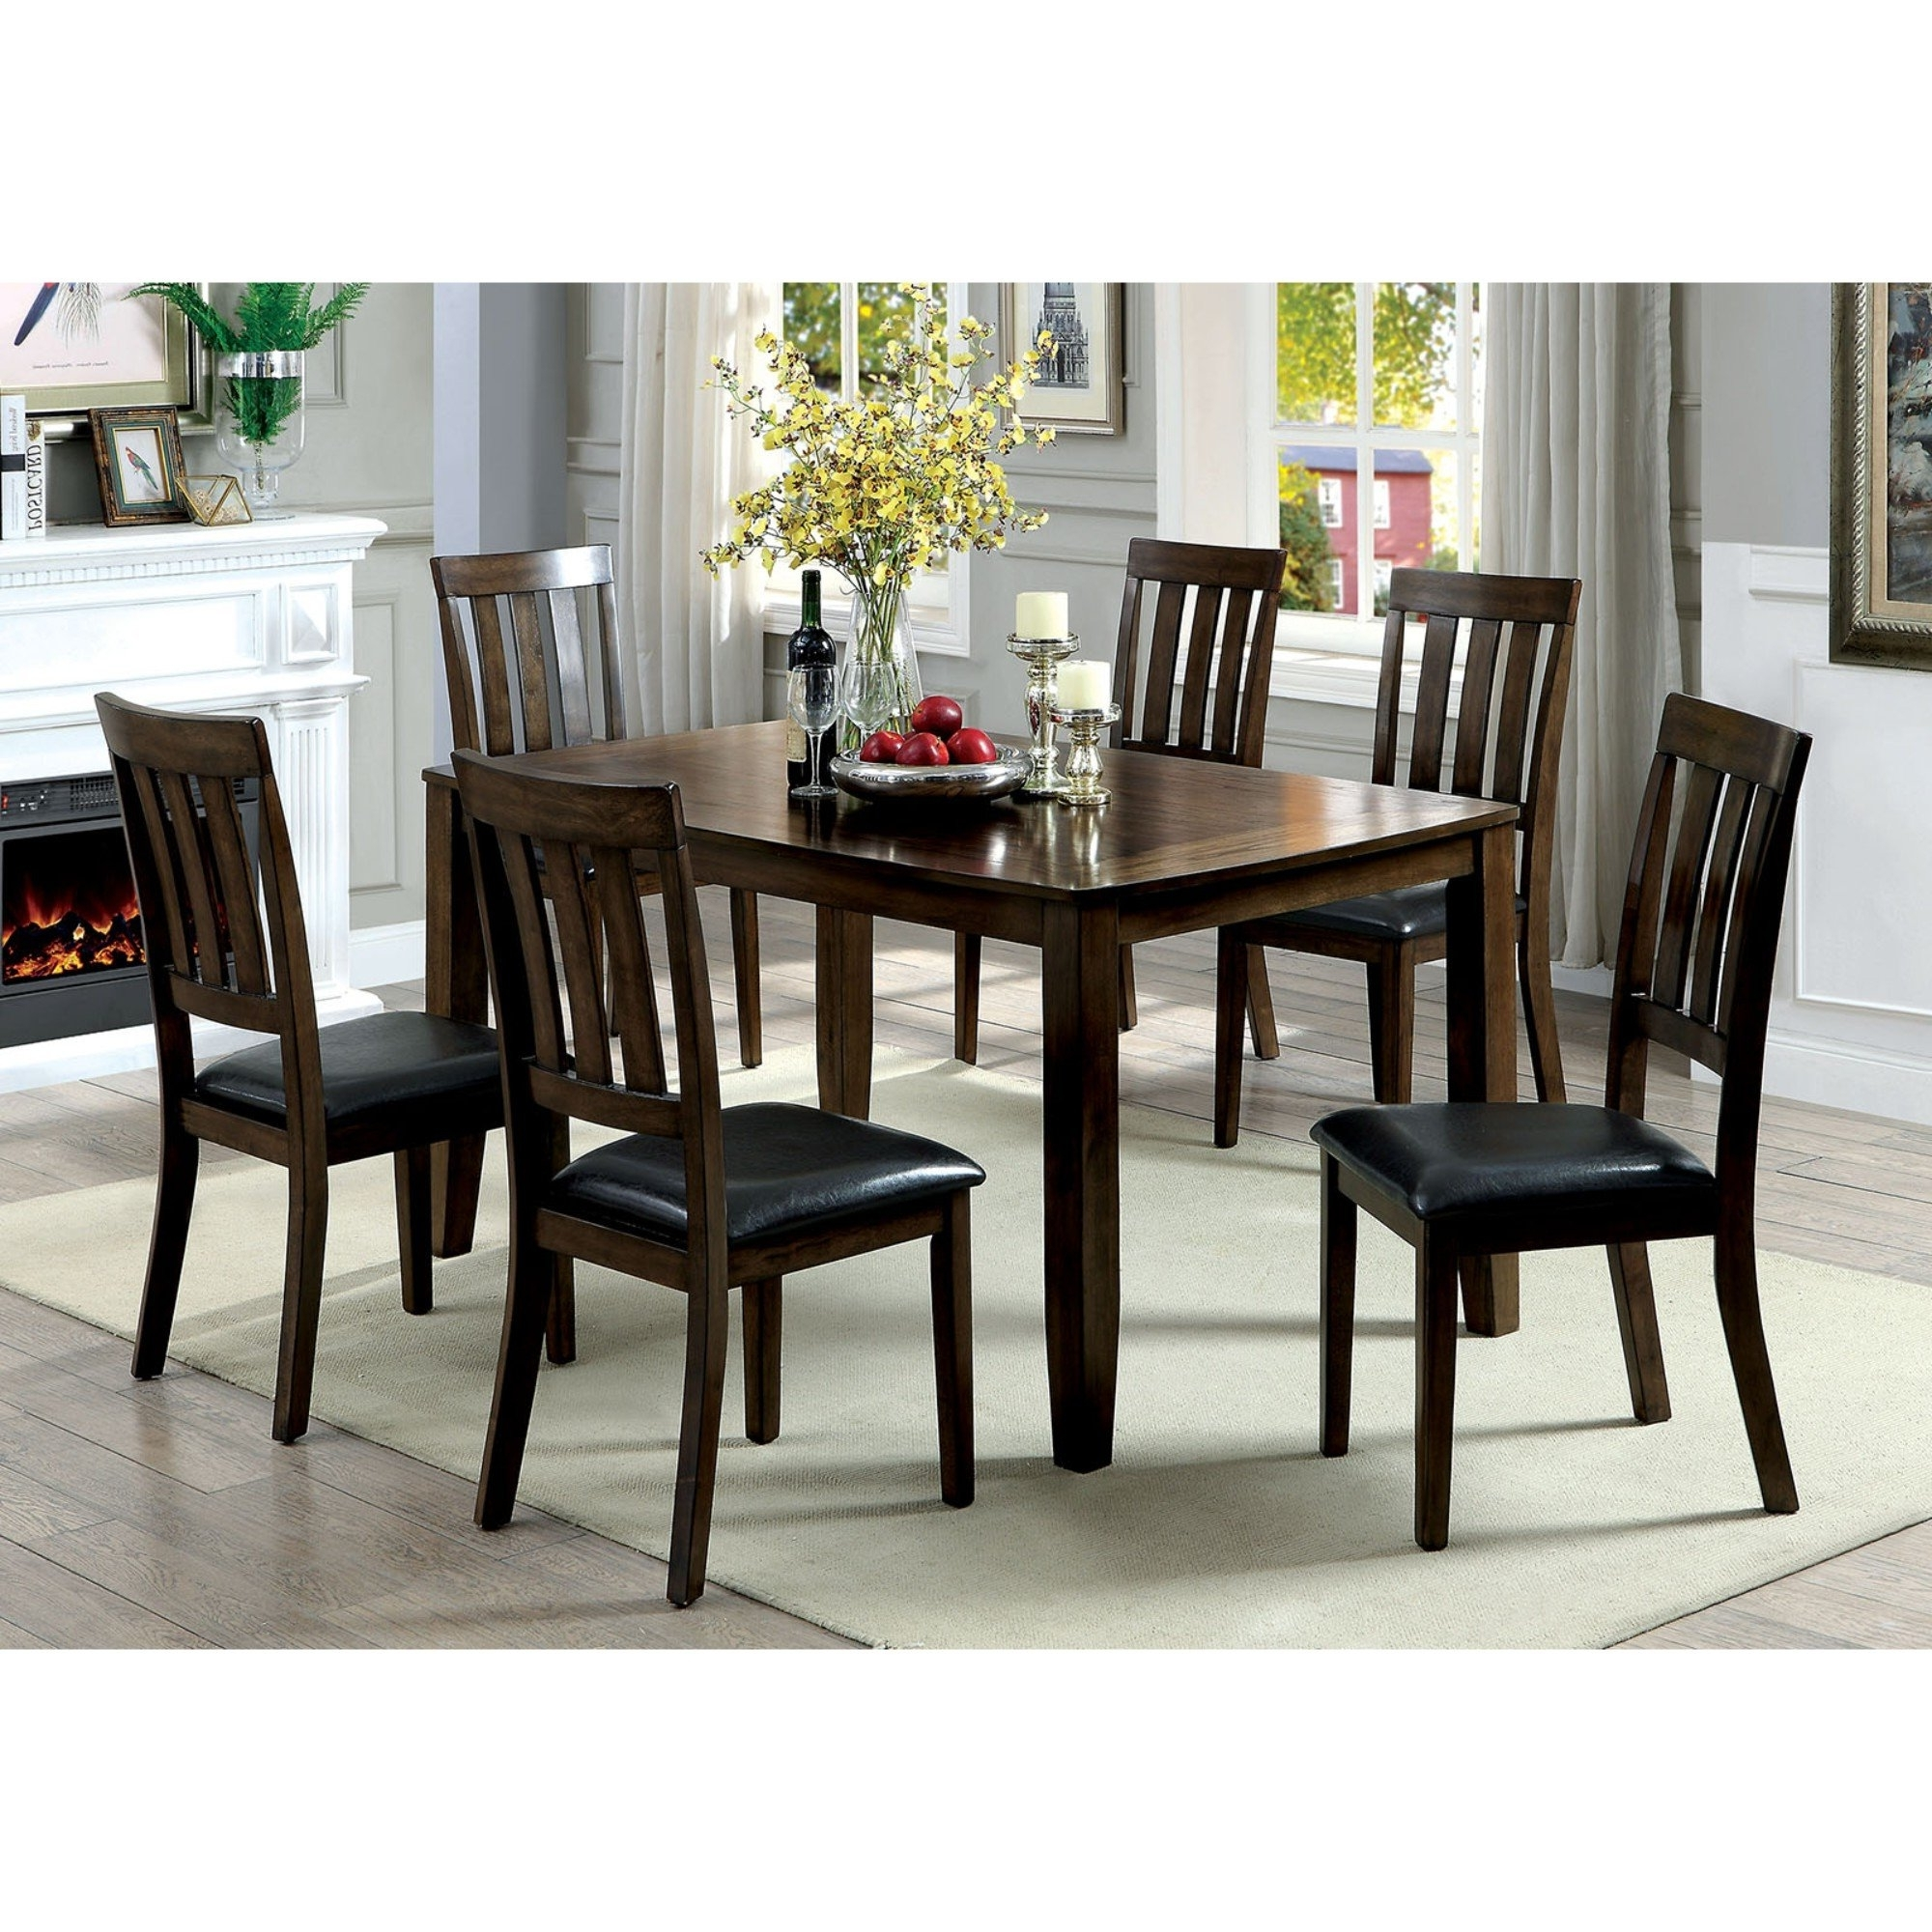 Most Popular Millwood Pines Devon Wooden 7 Piece Counter Height Dining Table Set For Candice Ii 5 Piece Round Dining Sets With Slat Back Side Chairs (Gallery 6 of 25)